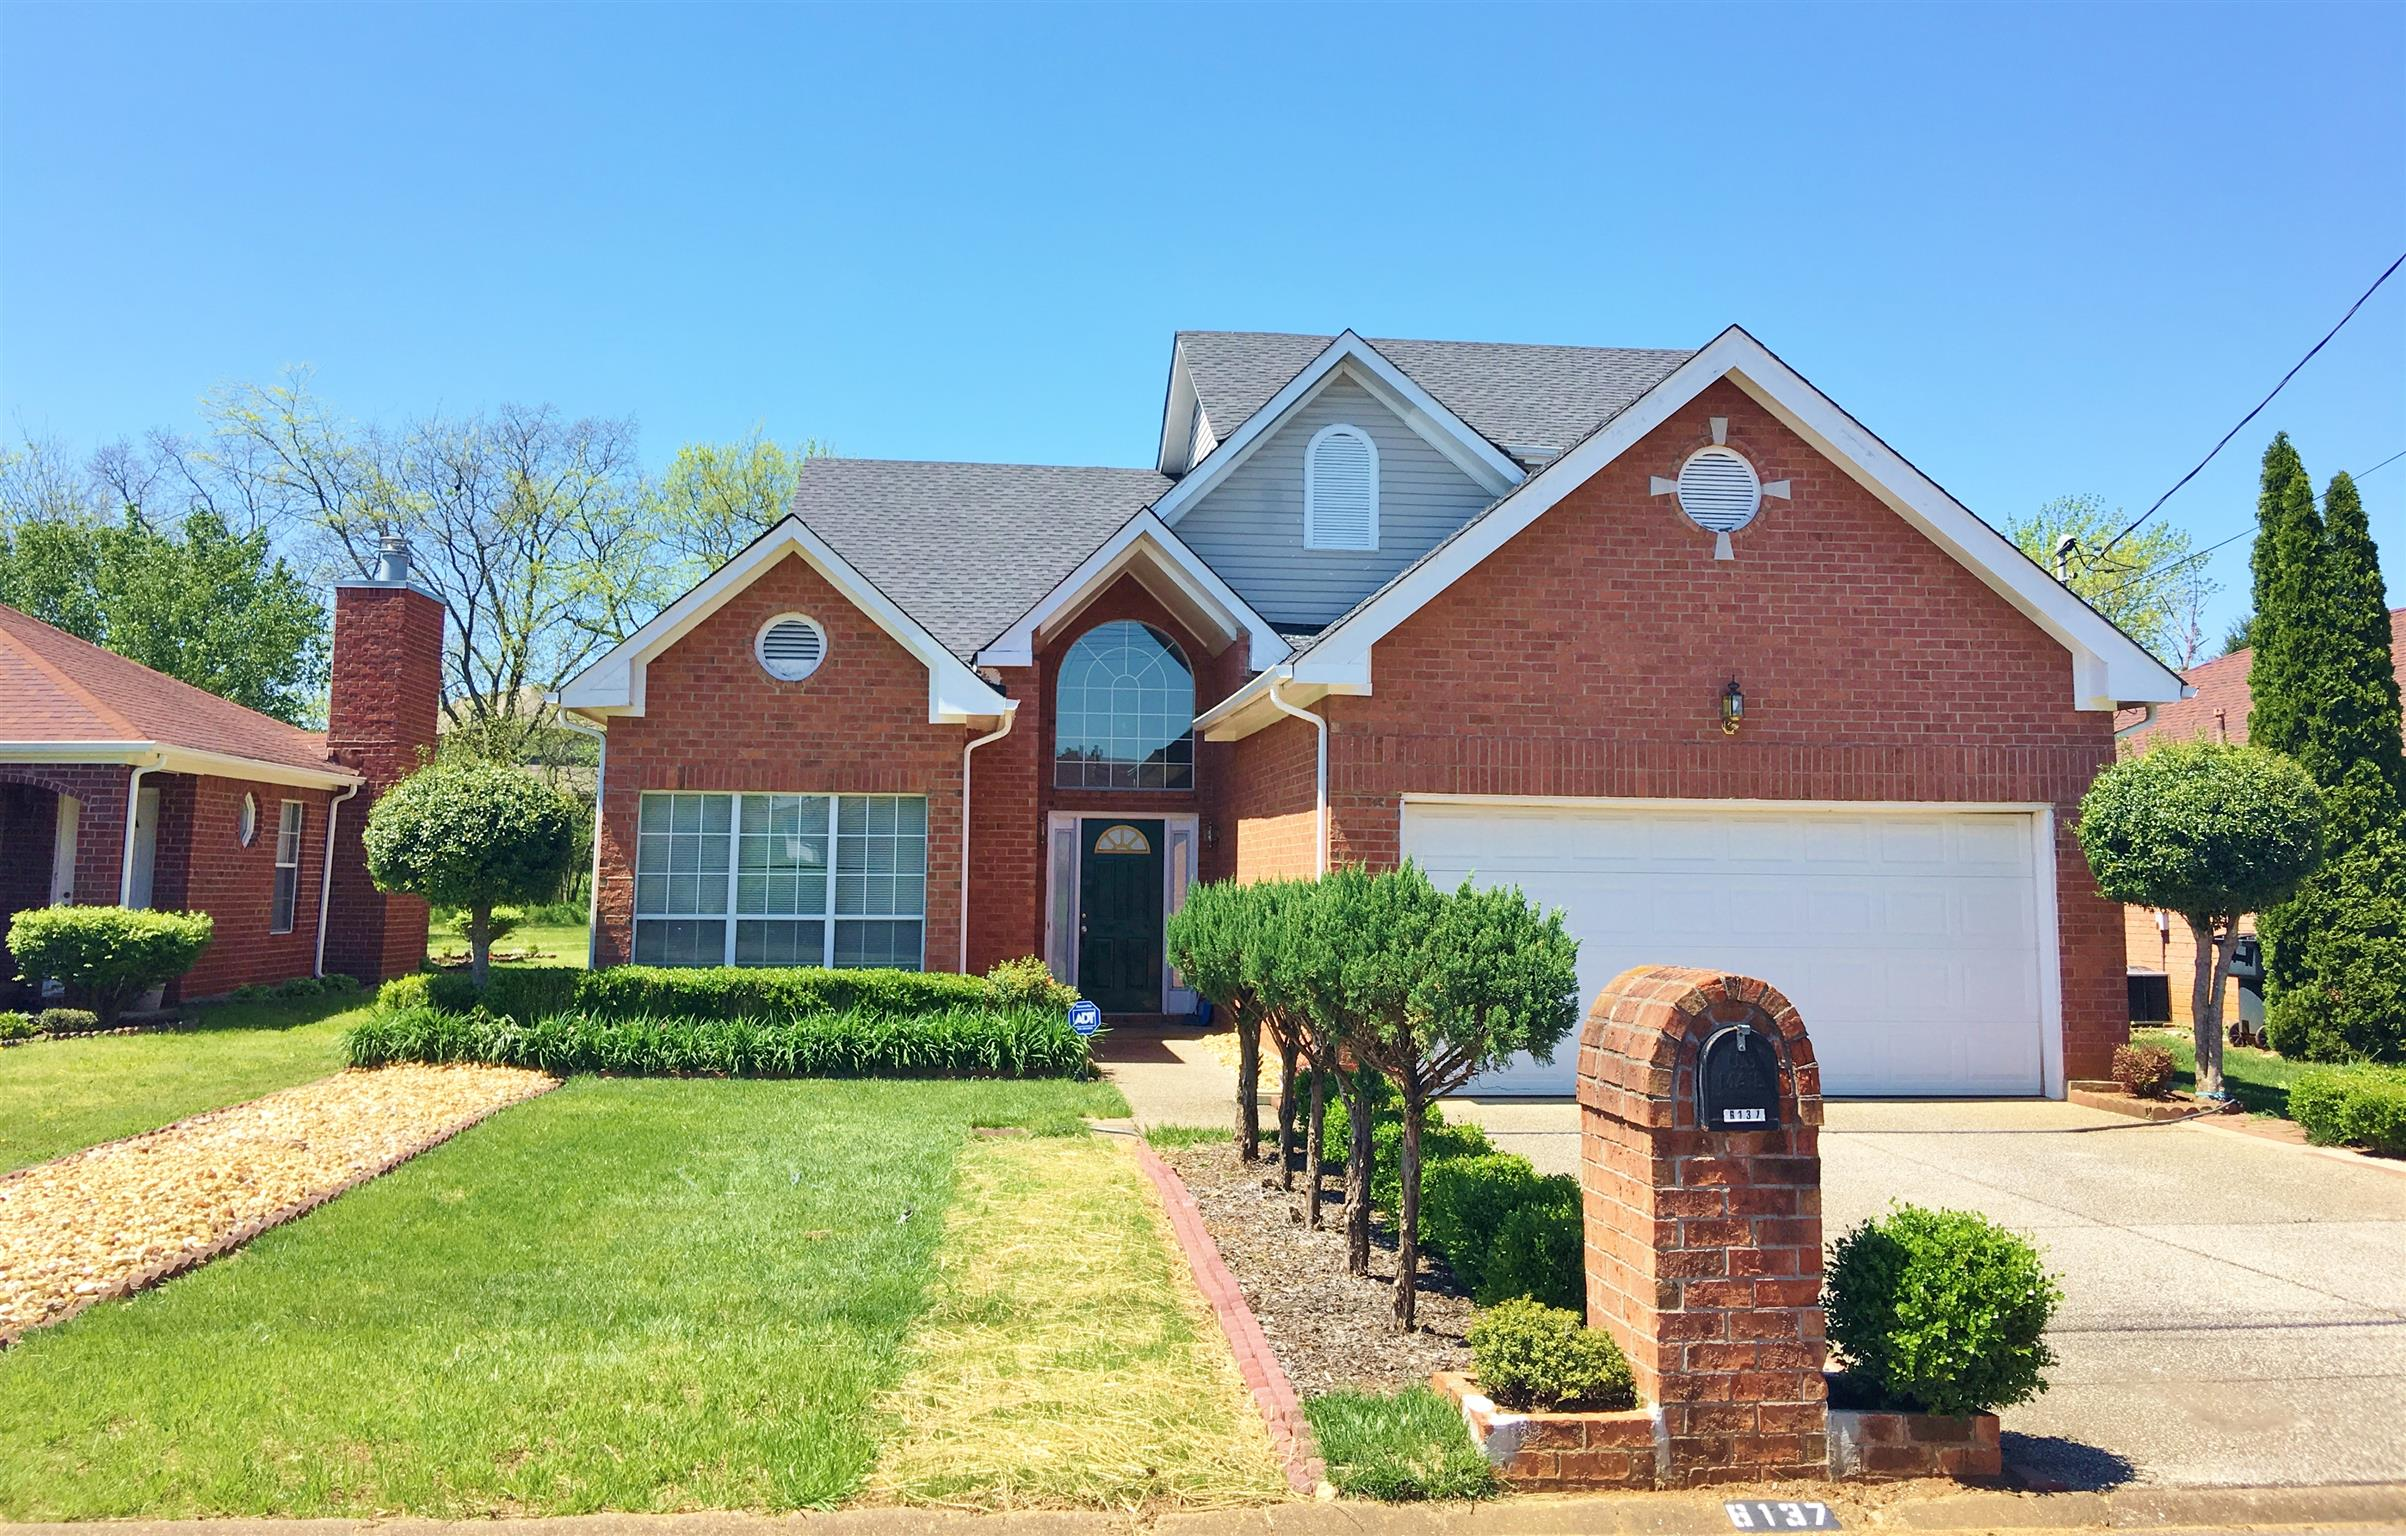 6137 Firelight Trl, Nashville-Antioch in Davidson County County, TN 37013 Home for Sale